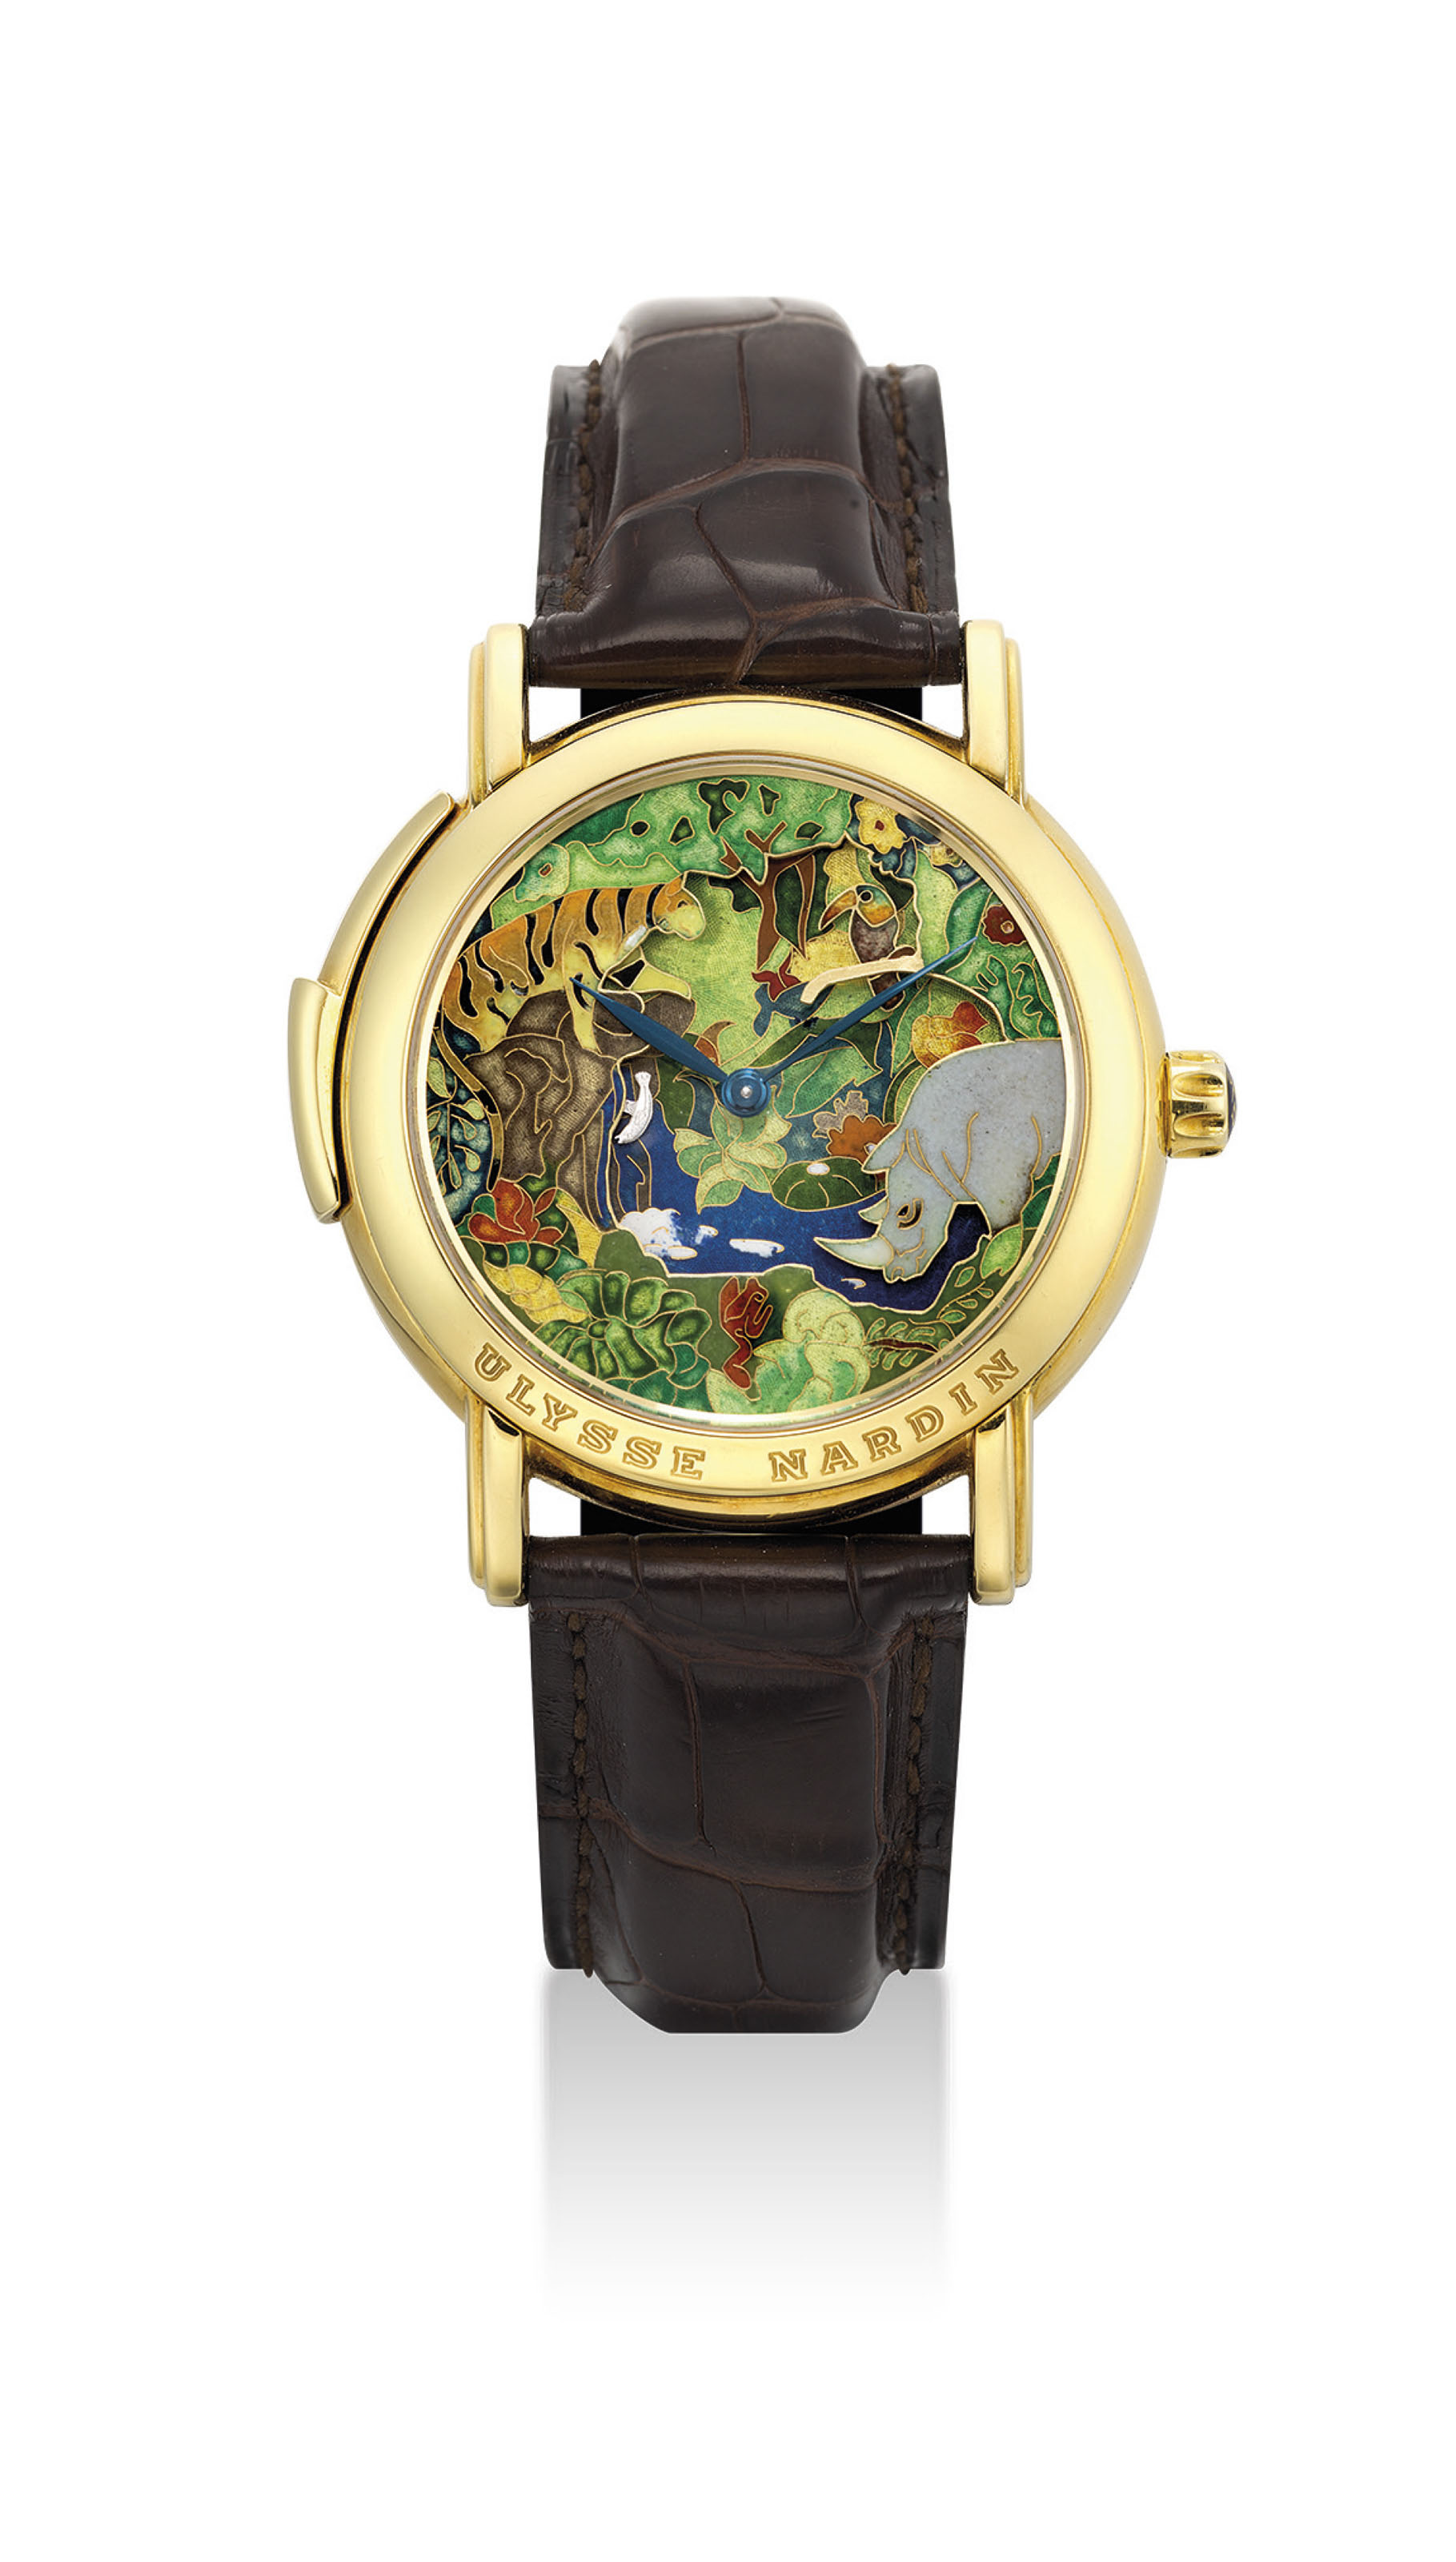 ULYSSE NARDIN. A VERY FINE AND RARE 18K GOLD LIMITED EDITION MINUTE REPEATING WRISTWATCH WITH THREE AUTOMATON JACQUEMARTS SCENE AND CLOISONNÉ ENAMEL DIAL